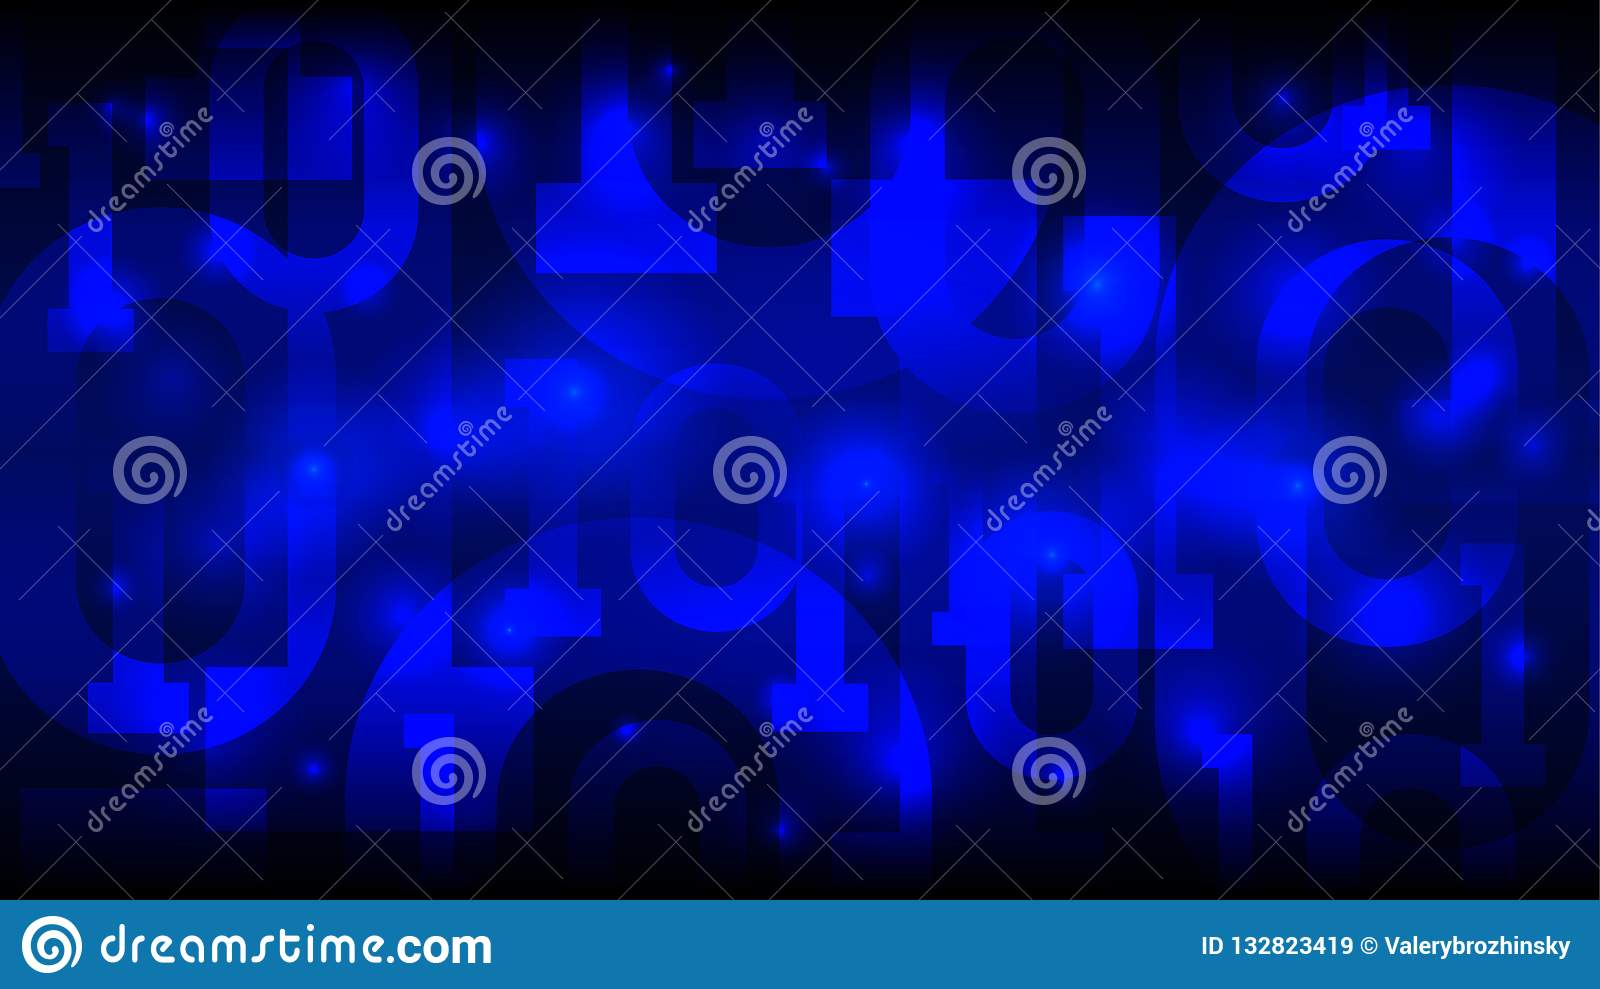 Matrix blue background with binary code, digital code in abstract futuristic cyberspace, artificial intelligence, big data, vector